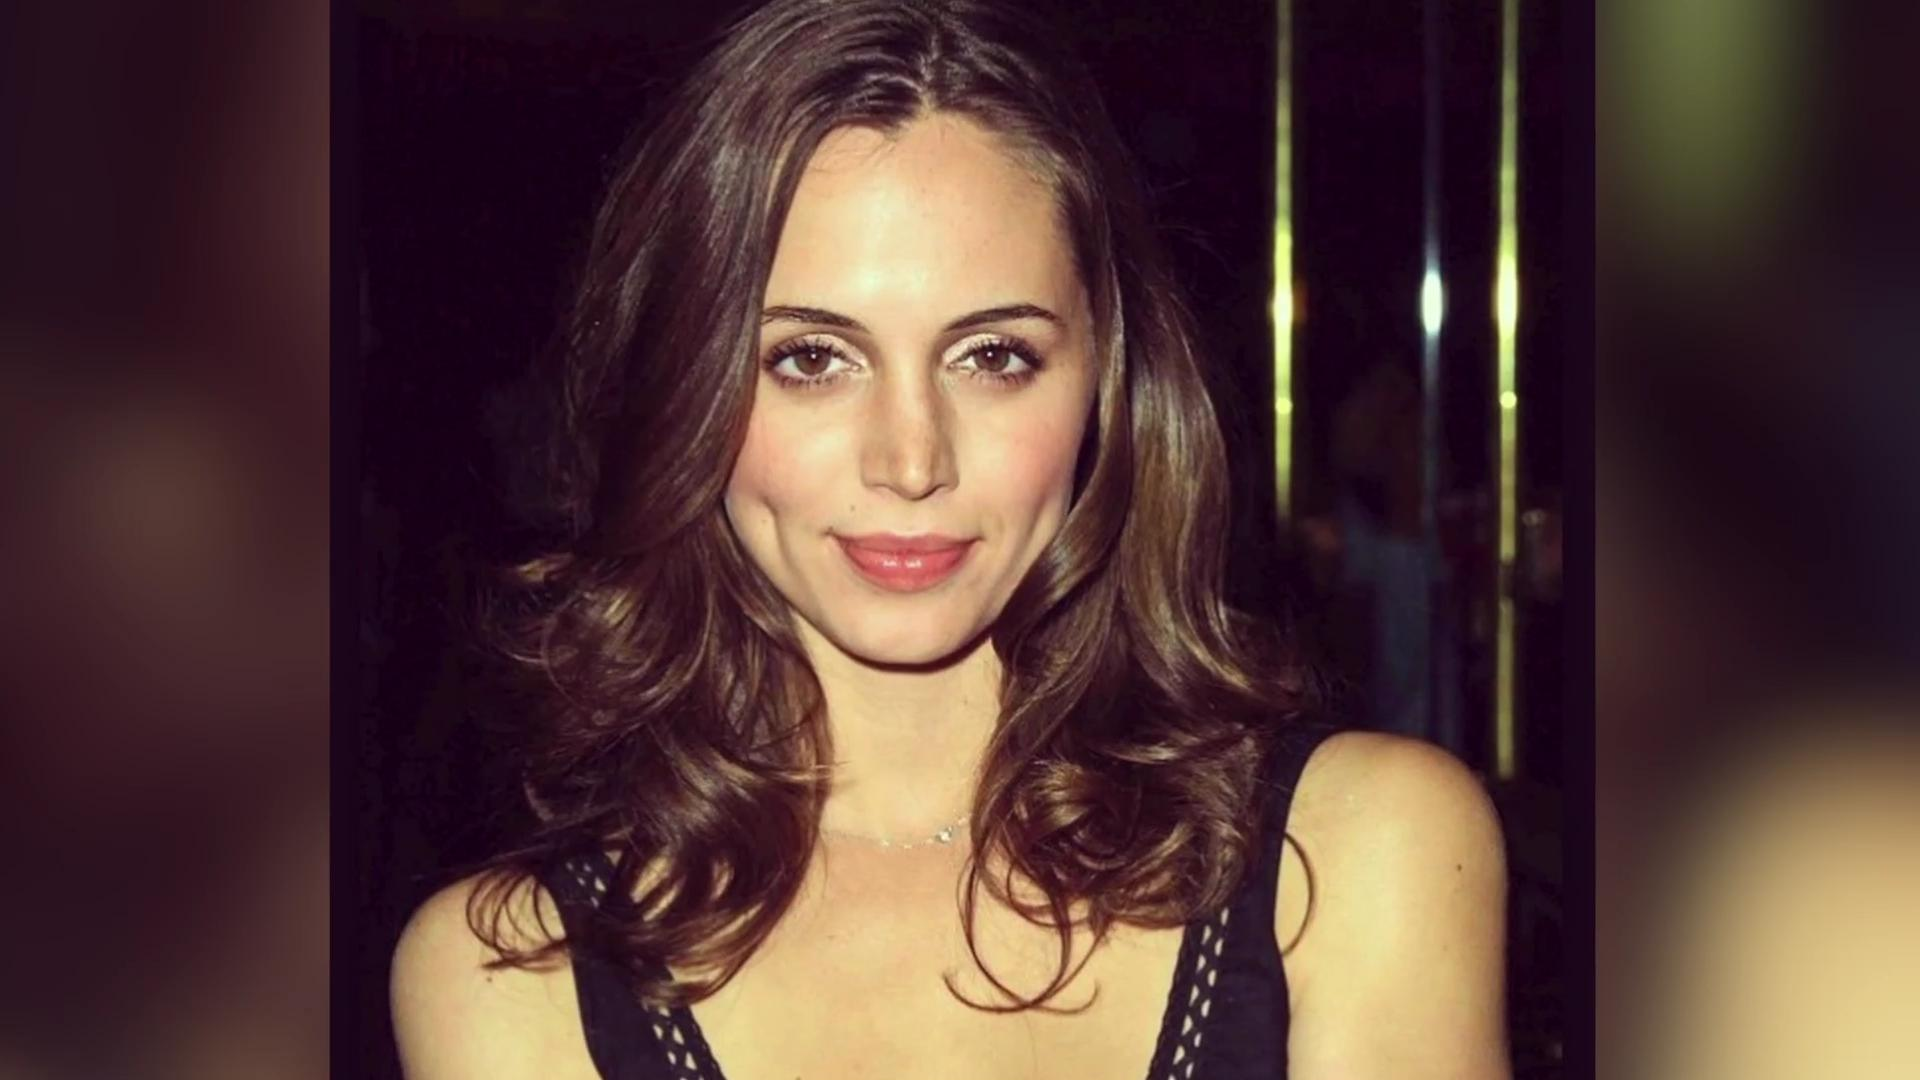 Eliza Dushku says One Direction forced her out of her hotel room